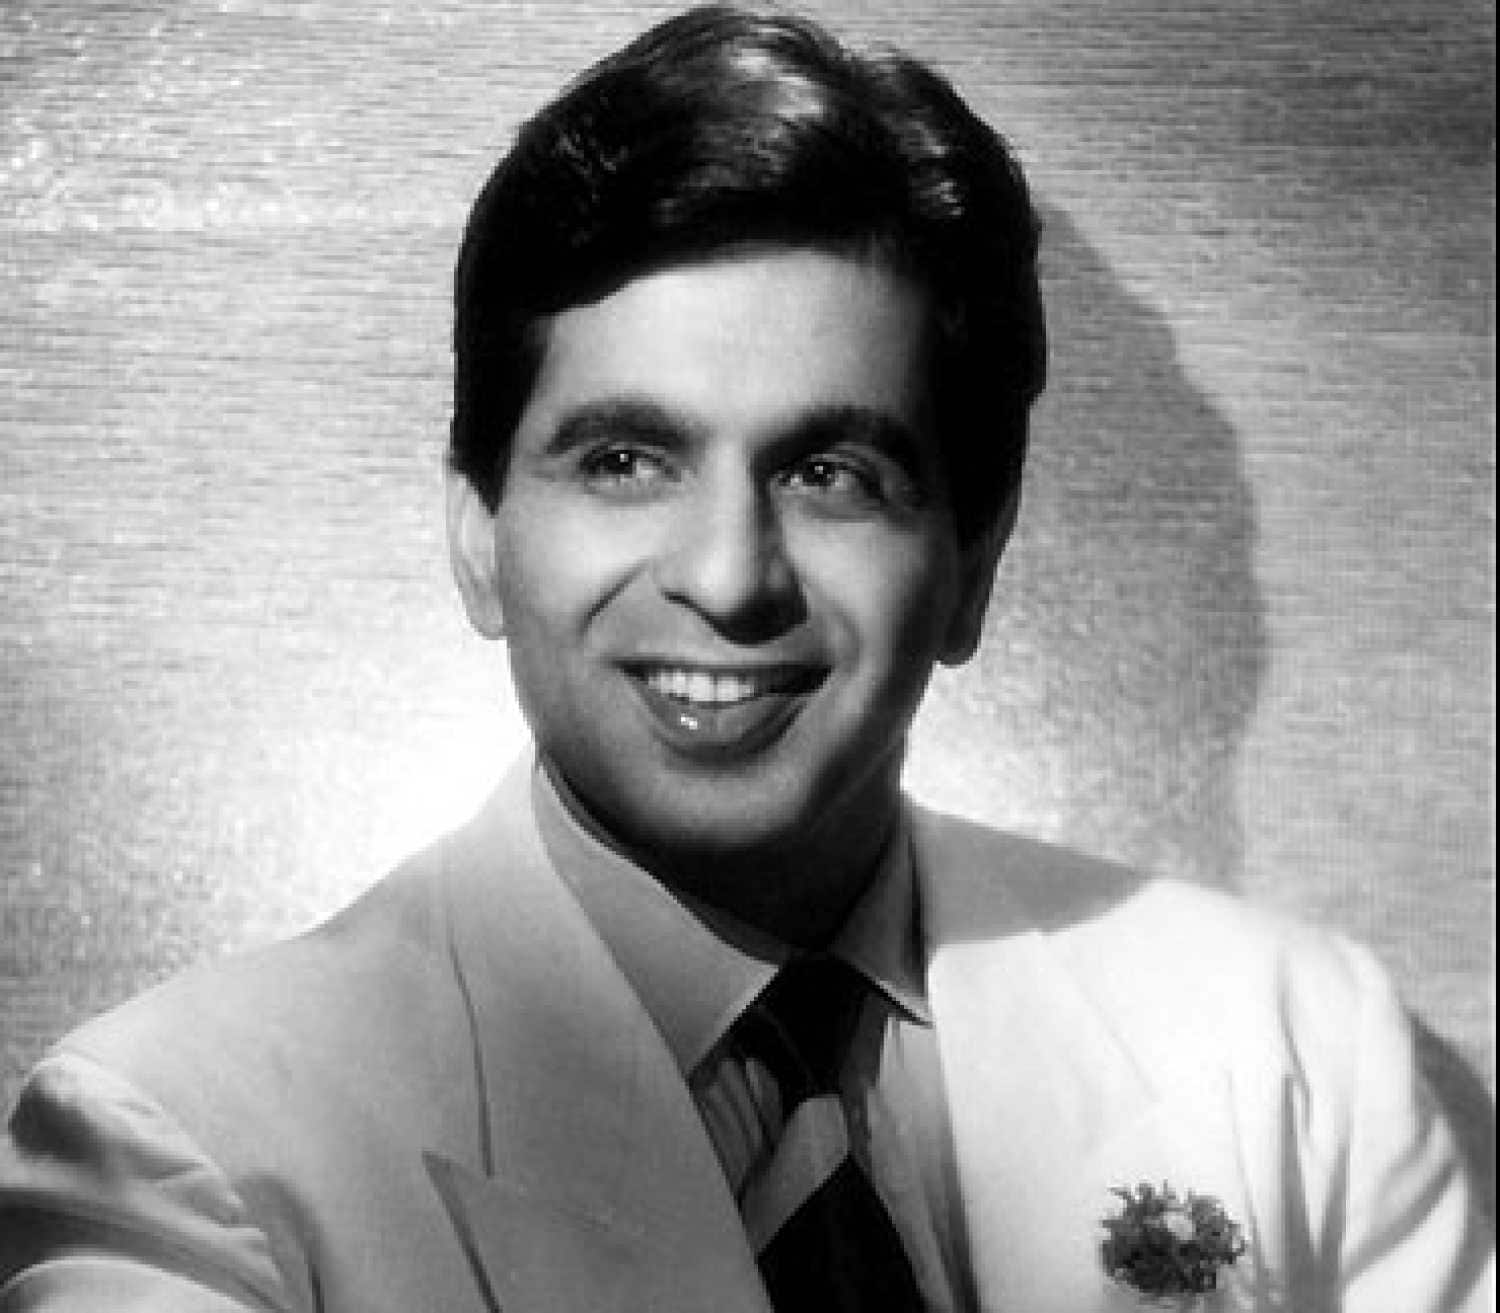 R.I.P Dilip Kumar: Legend's quotes on life, acting, fame, India and more